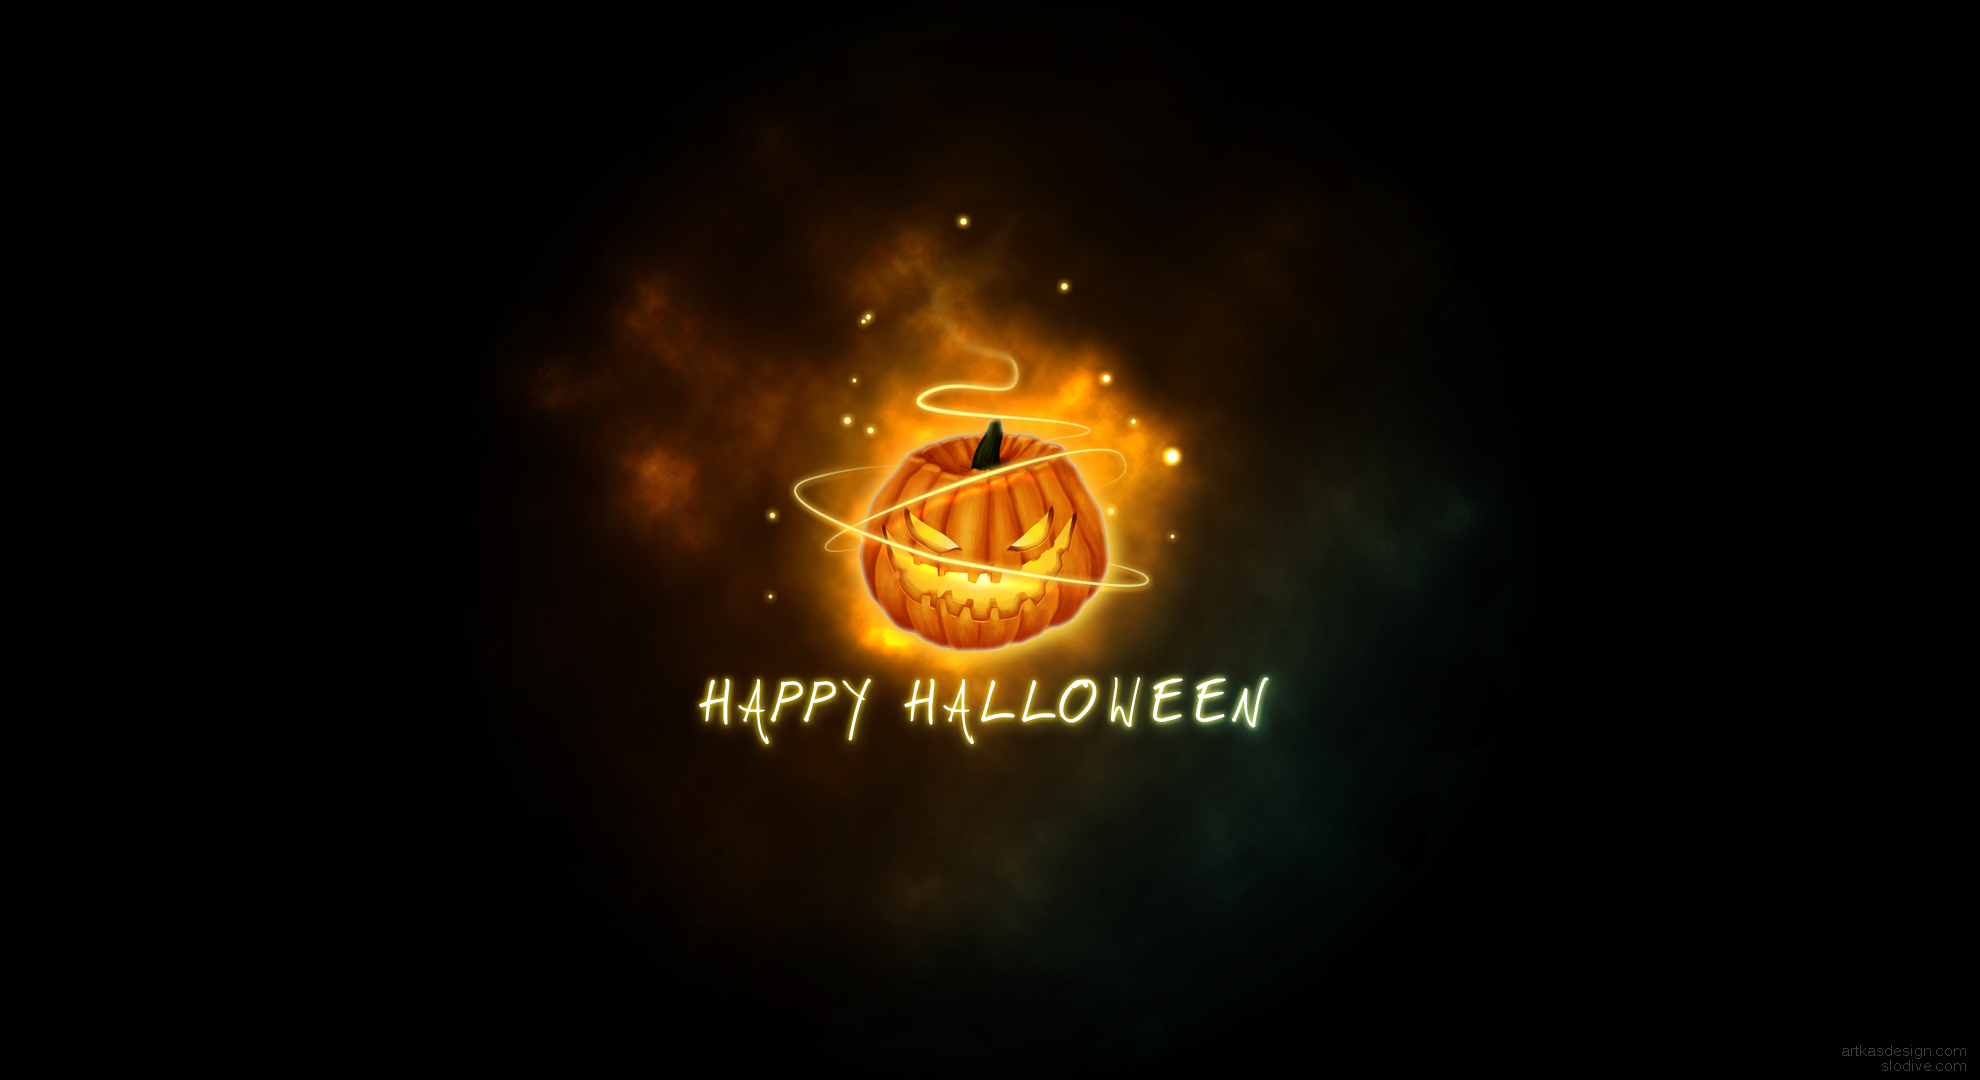 Halloween Hd Wallpaper Background Image 1980x1080 Id 3170 Wallpaper Abyss